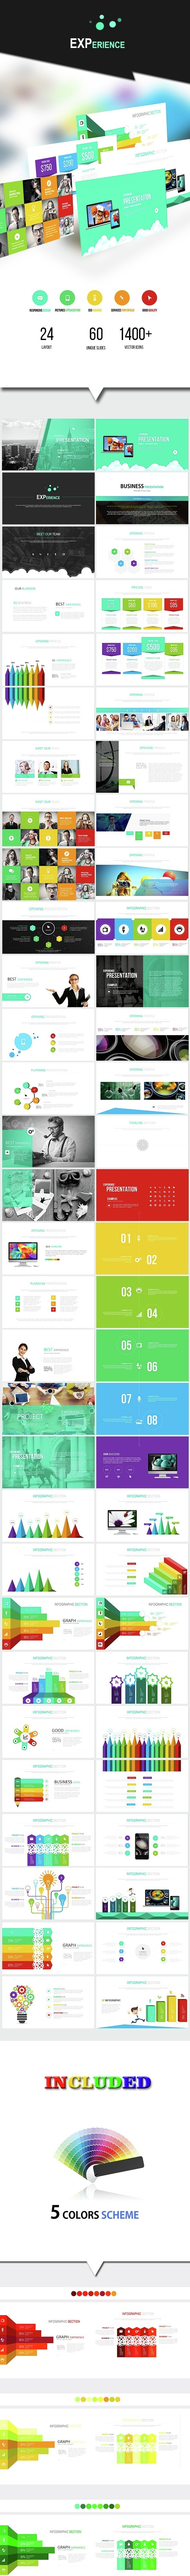 EXPERIENCE - Keynote Presentation Template - Business Keynote Templates